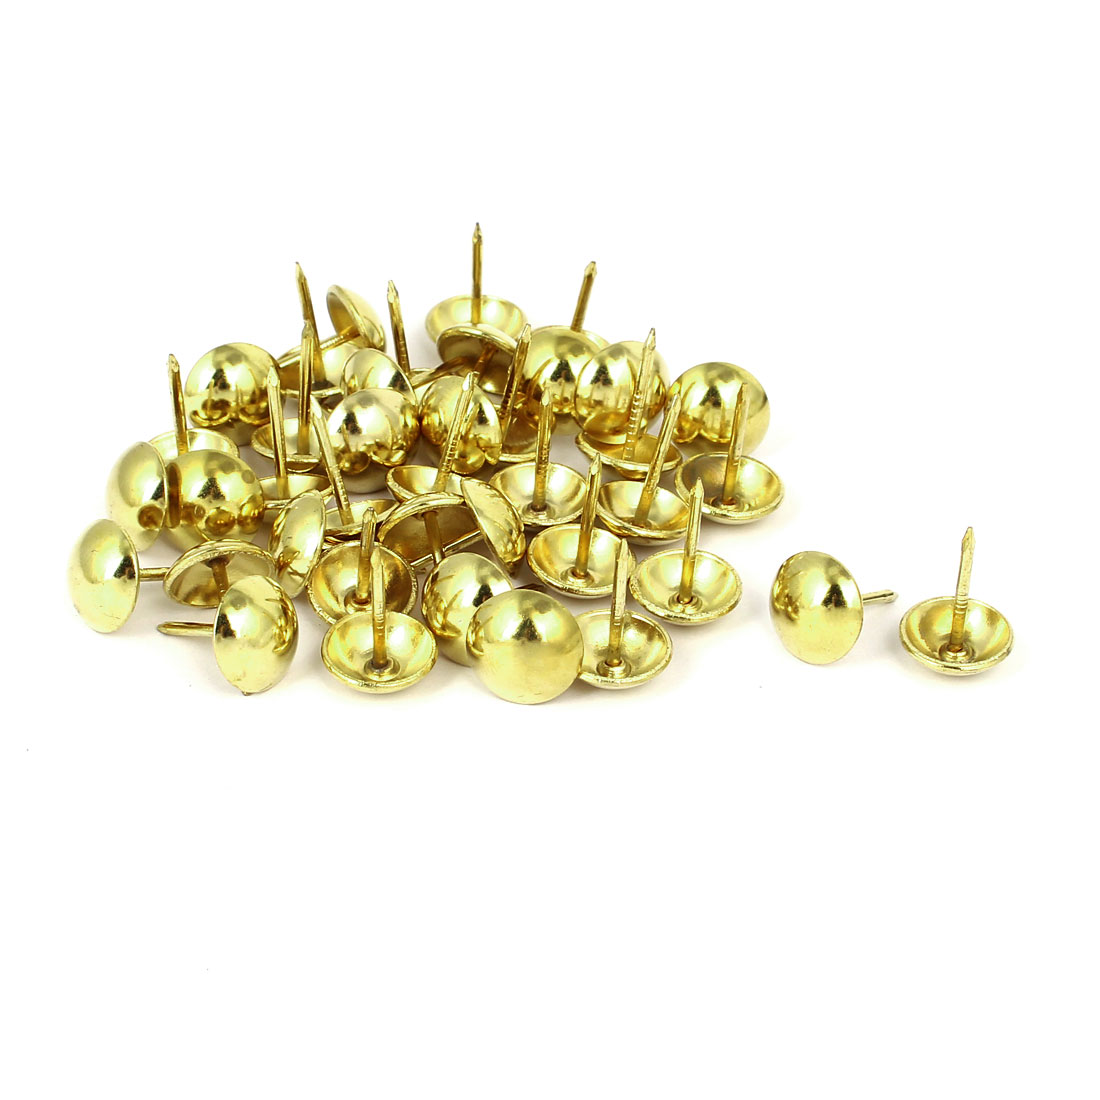 Home Furniture Upholstery Thumb Tack Nail Push Pin Gold Tone 12mm x 17mm 40pcs